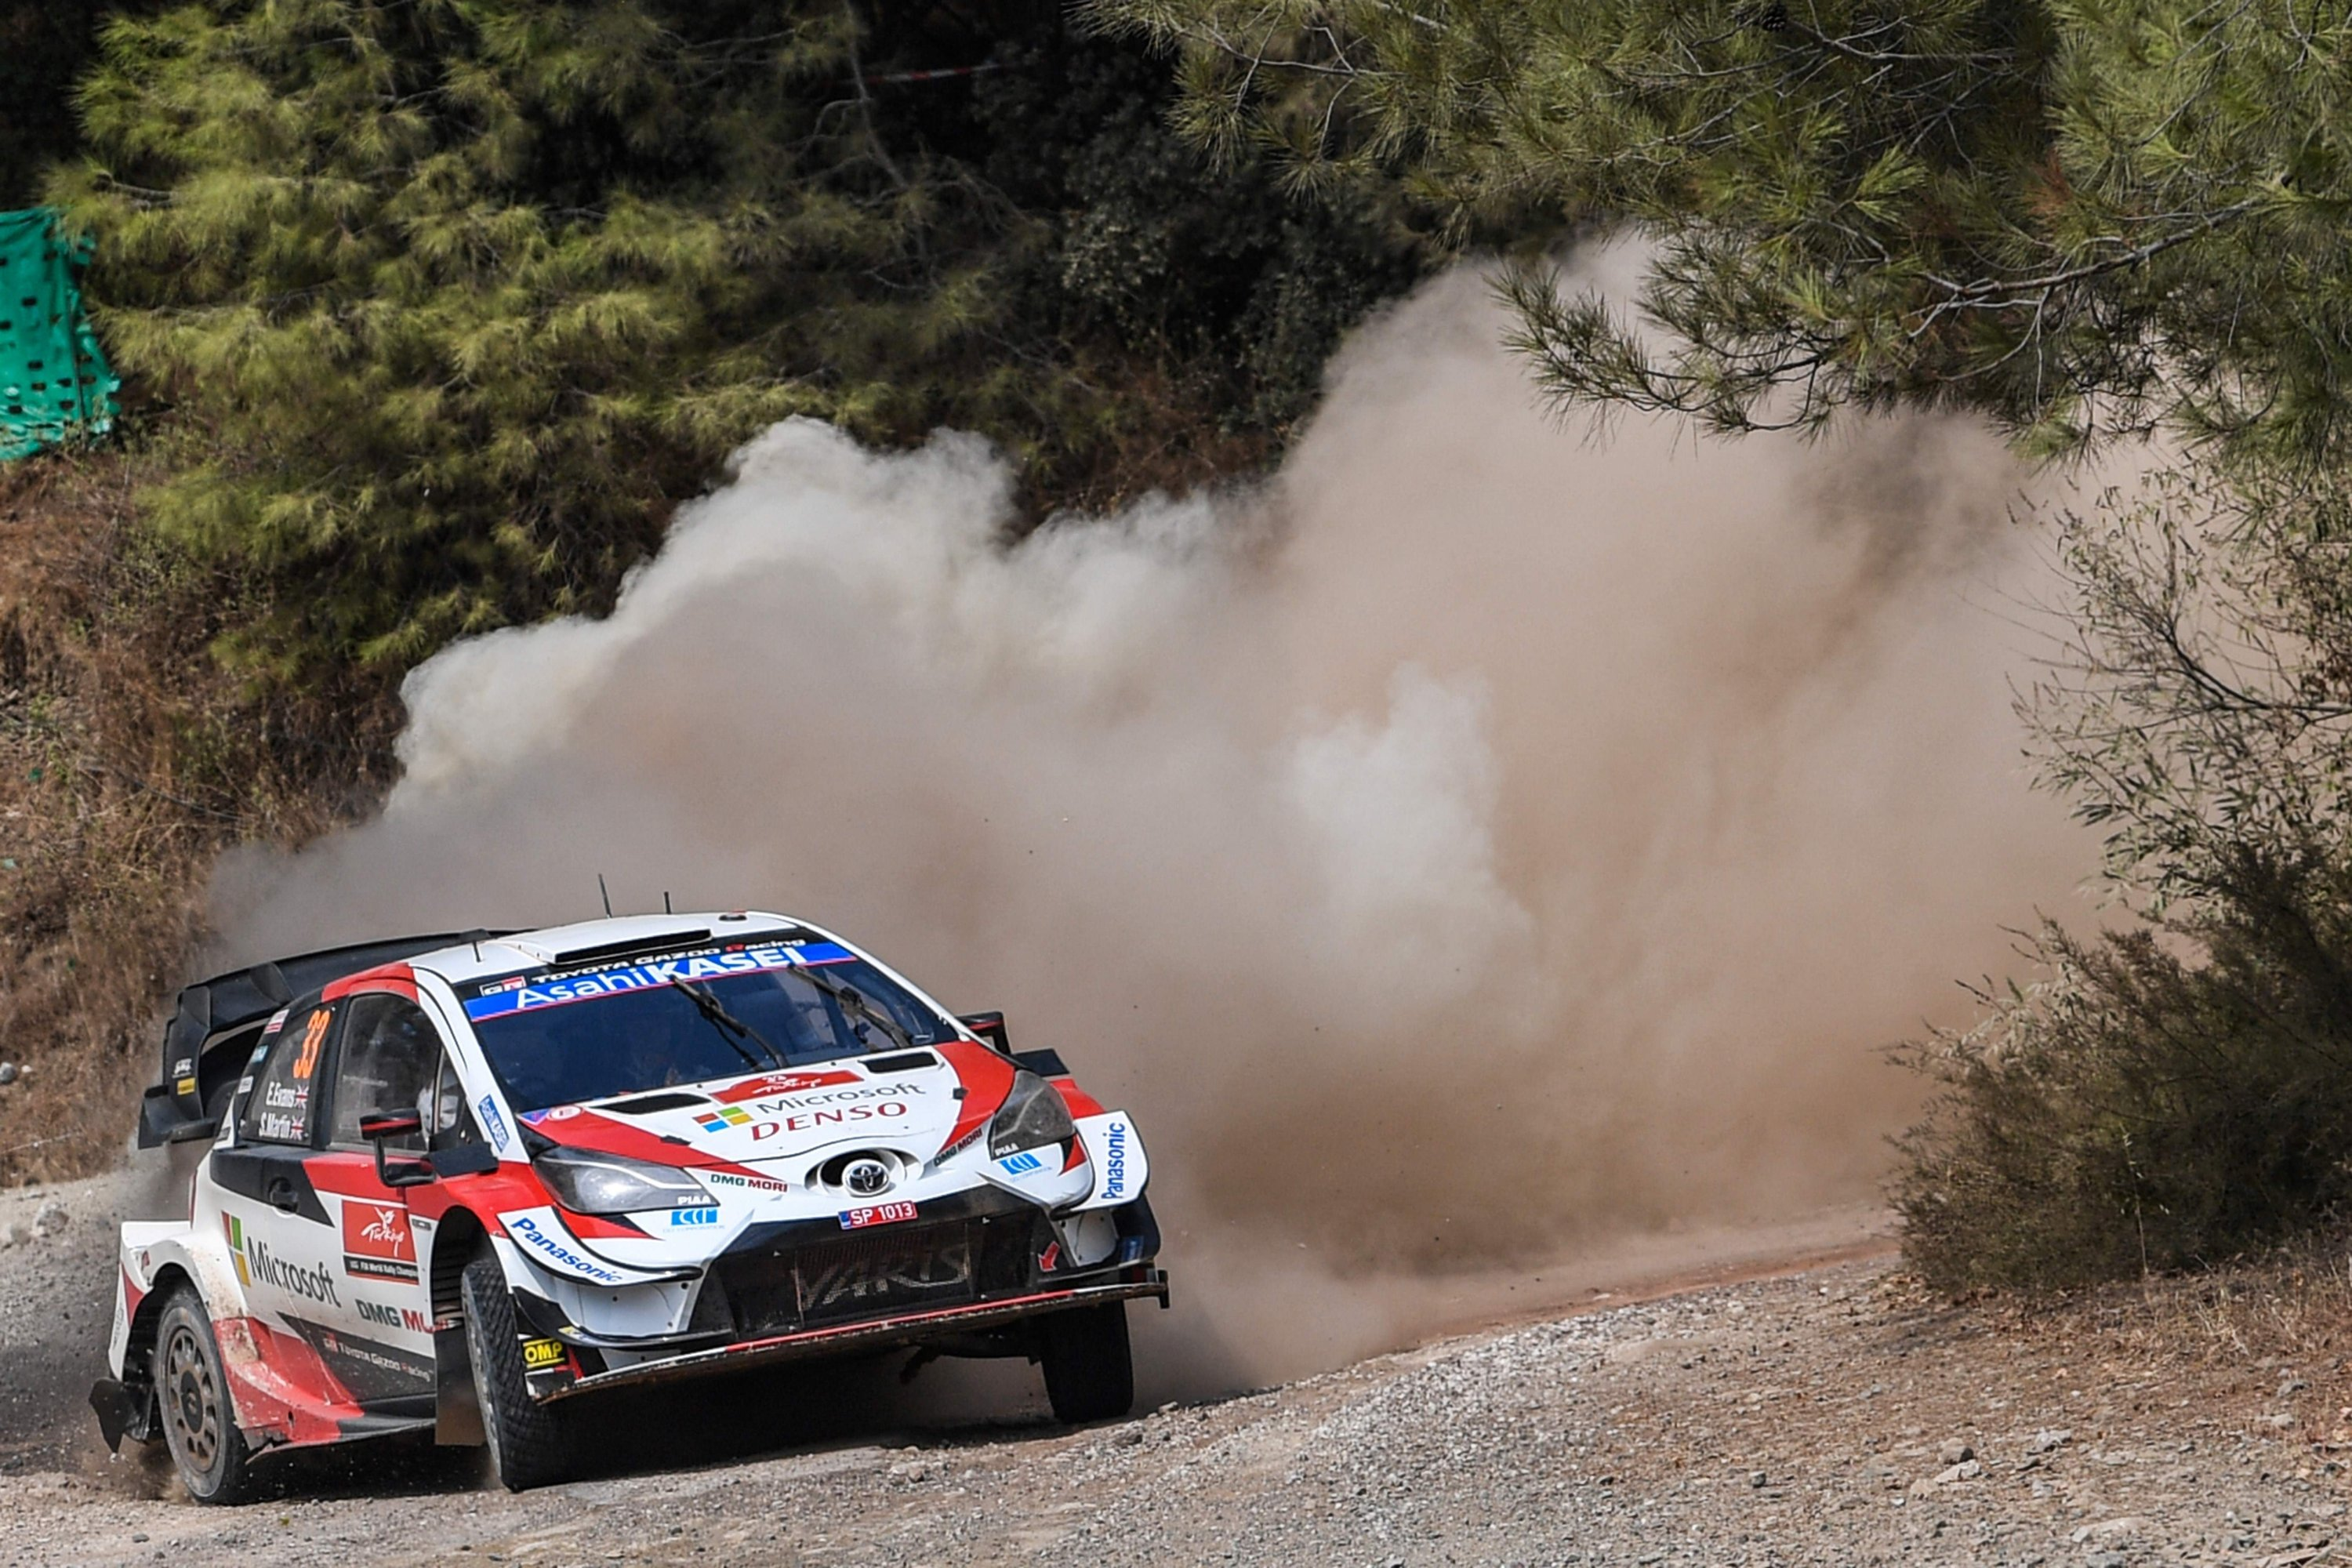 British pilot Elfyn Evans and co-driver Scott Martin steer their Toyota Yaris WRC racing car during the Marmaris stage on the third and last day of the Turkish WRC rally in Muğla, Turkey,  Sept. 20, 2020. (AFP Photo)